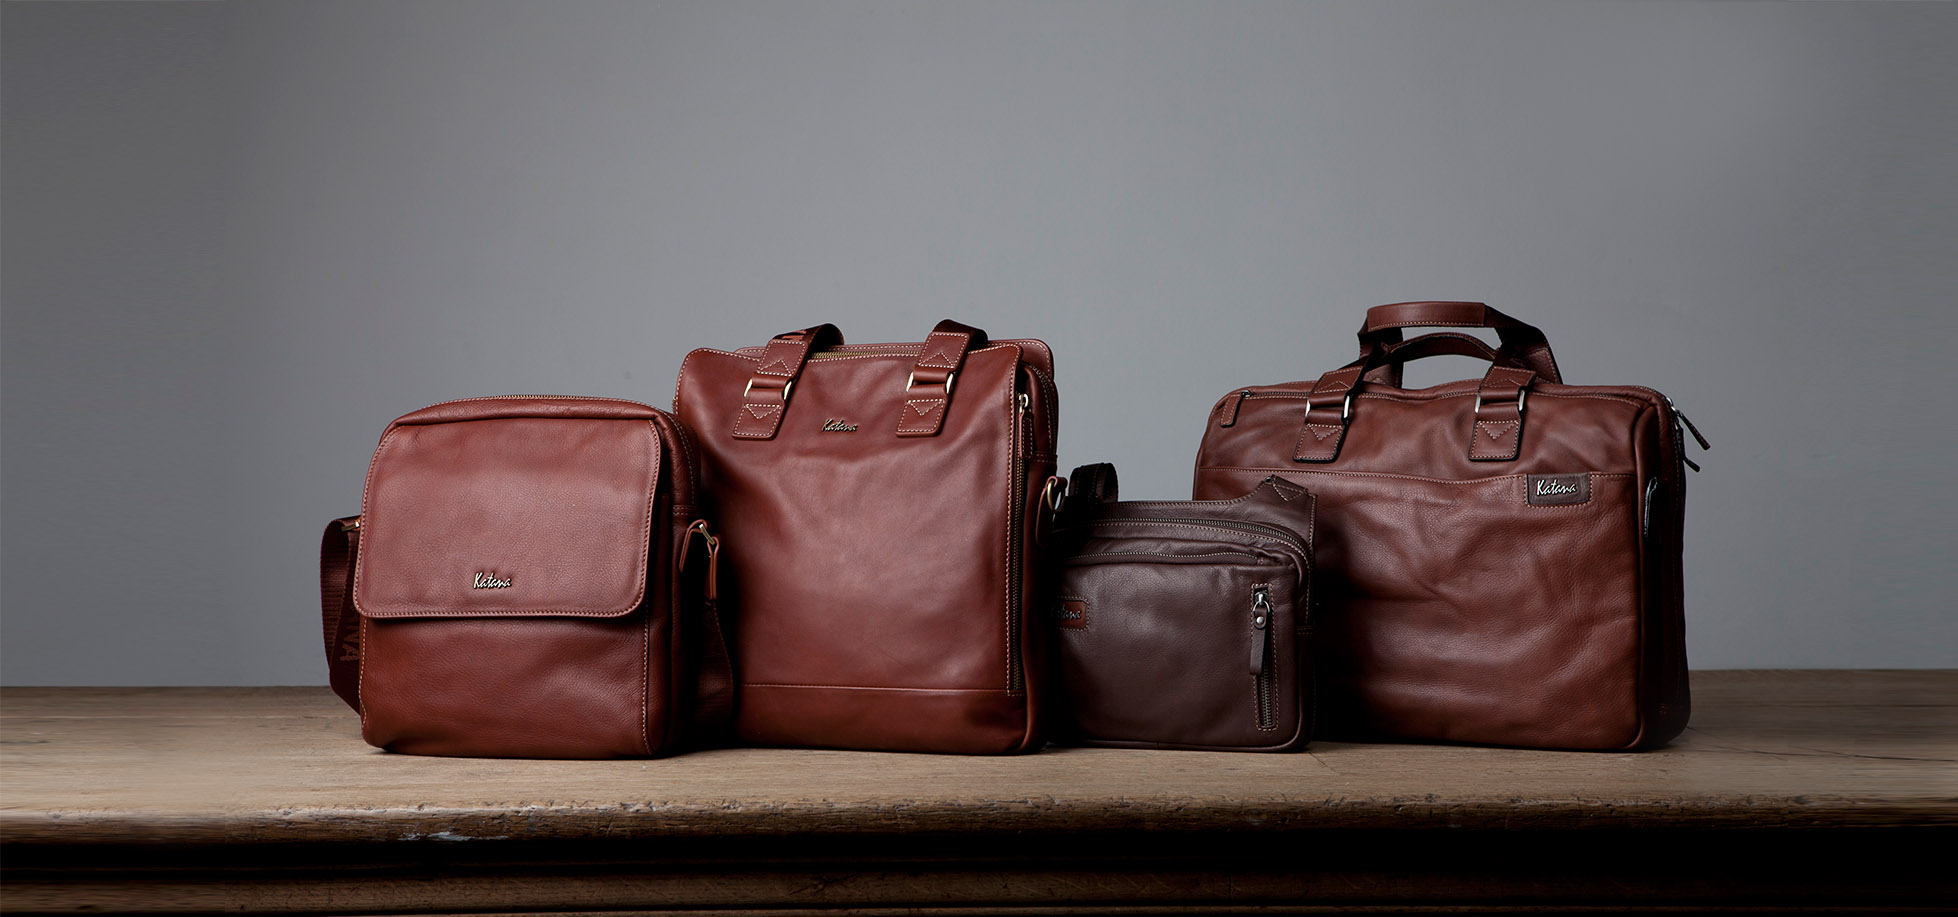 47b56fcc99 Katana Paris, french fine leather goods company specialized in the ...